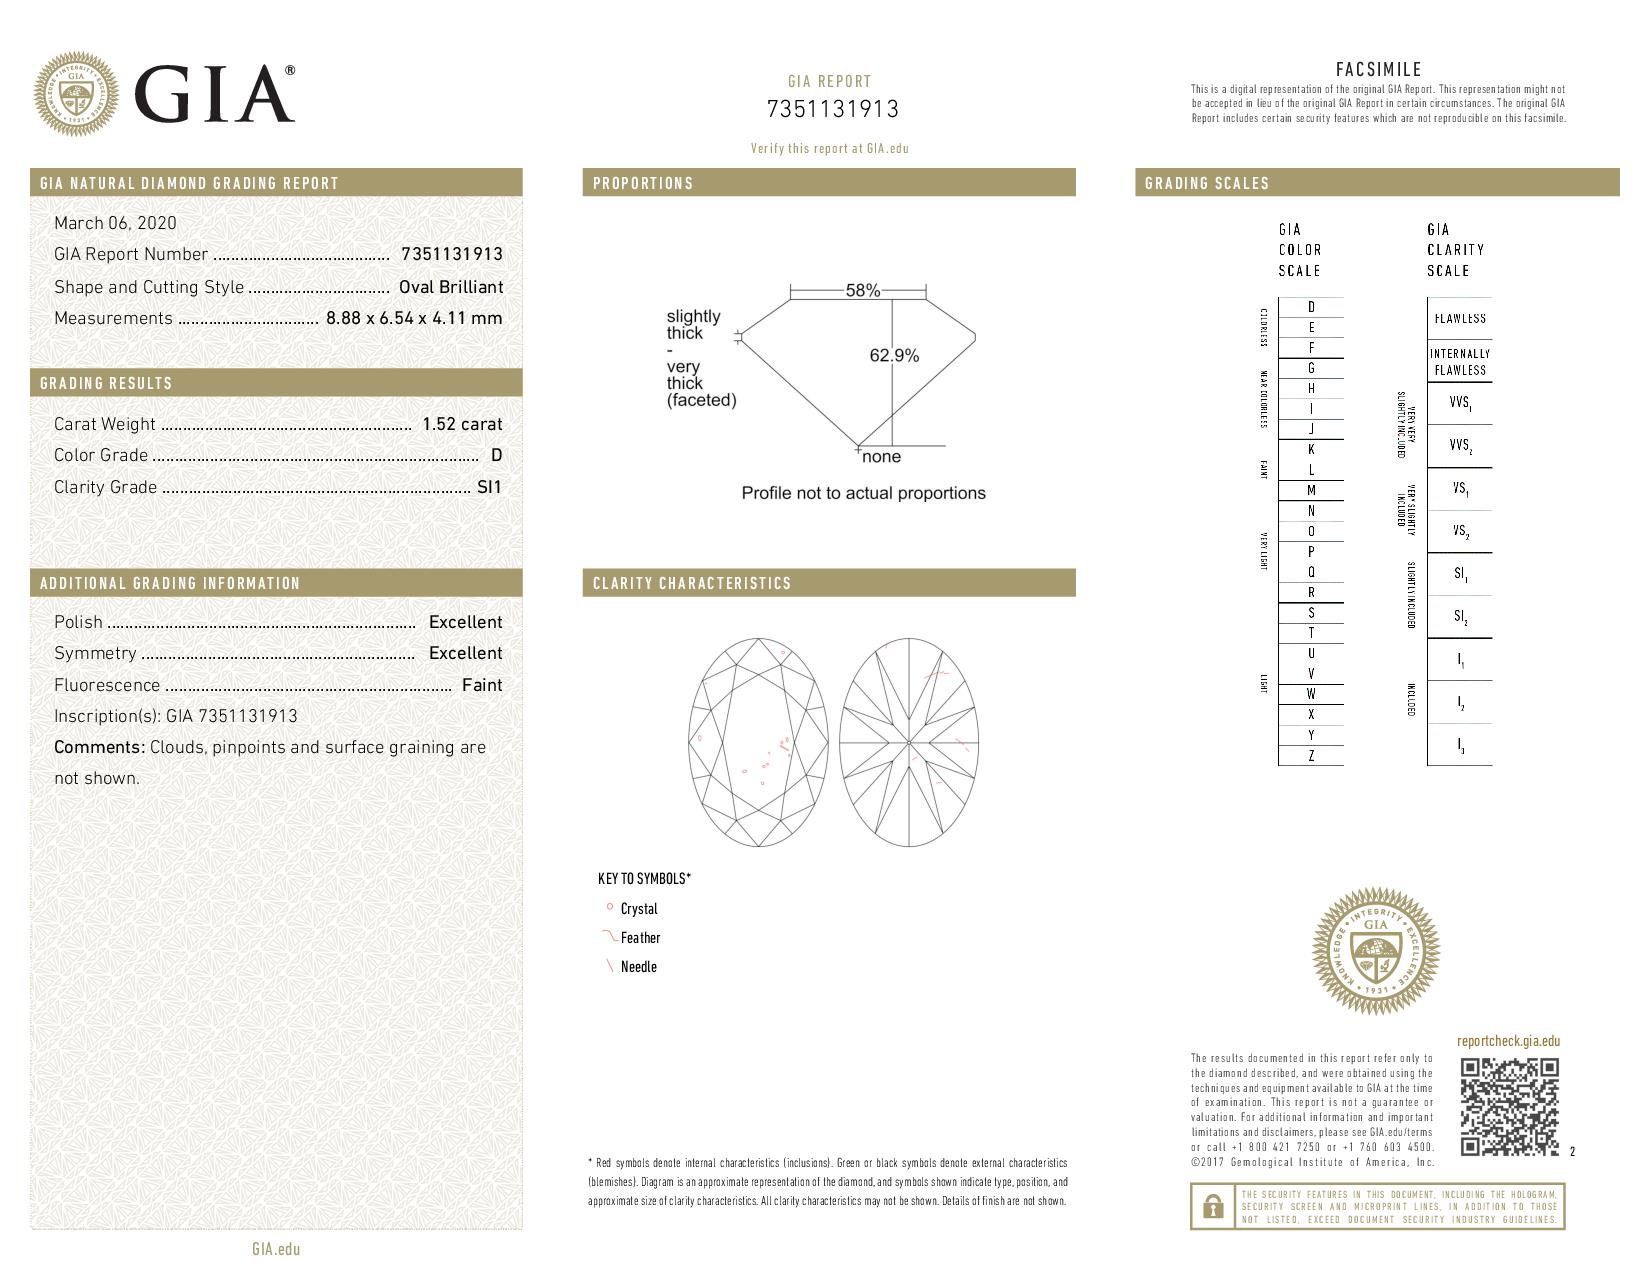 This is a 1.52 carat oval shape, D color, SI1 clarity natural diamond accompanied by a GIA grading report.